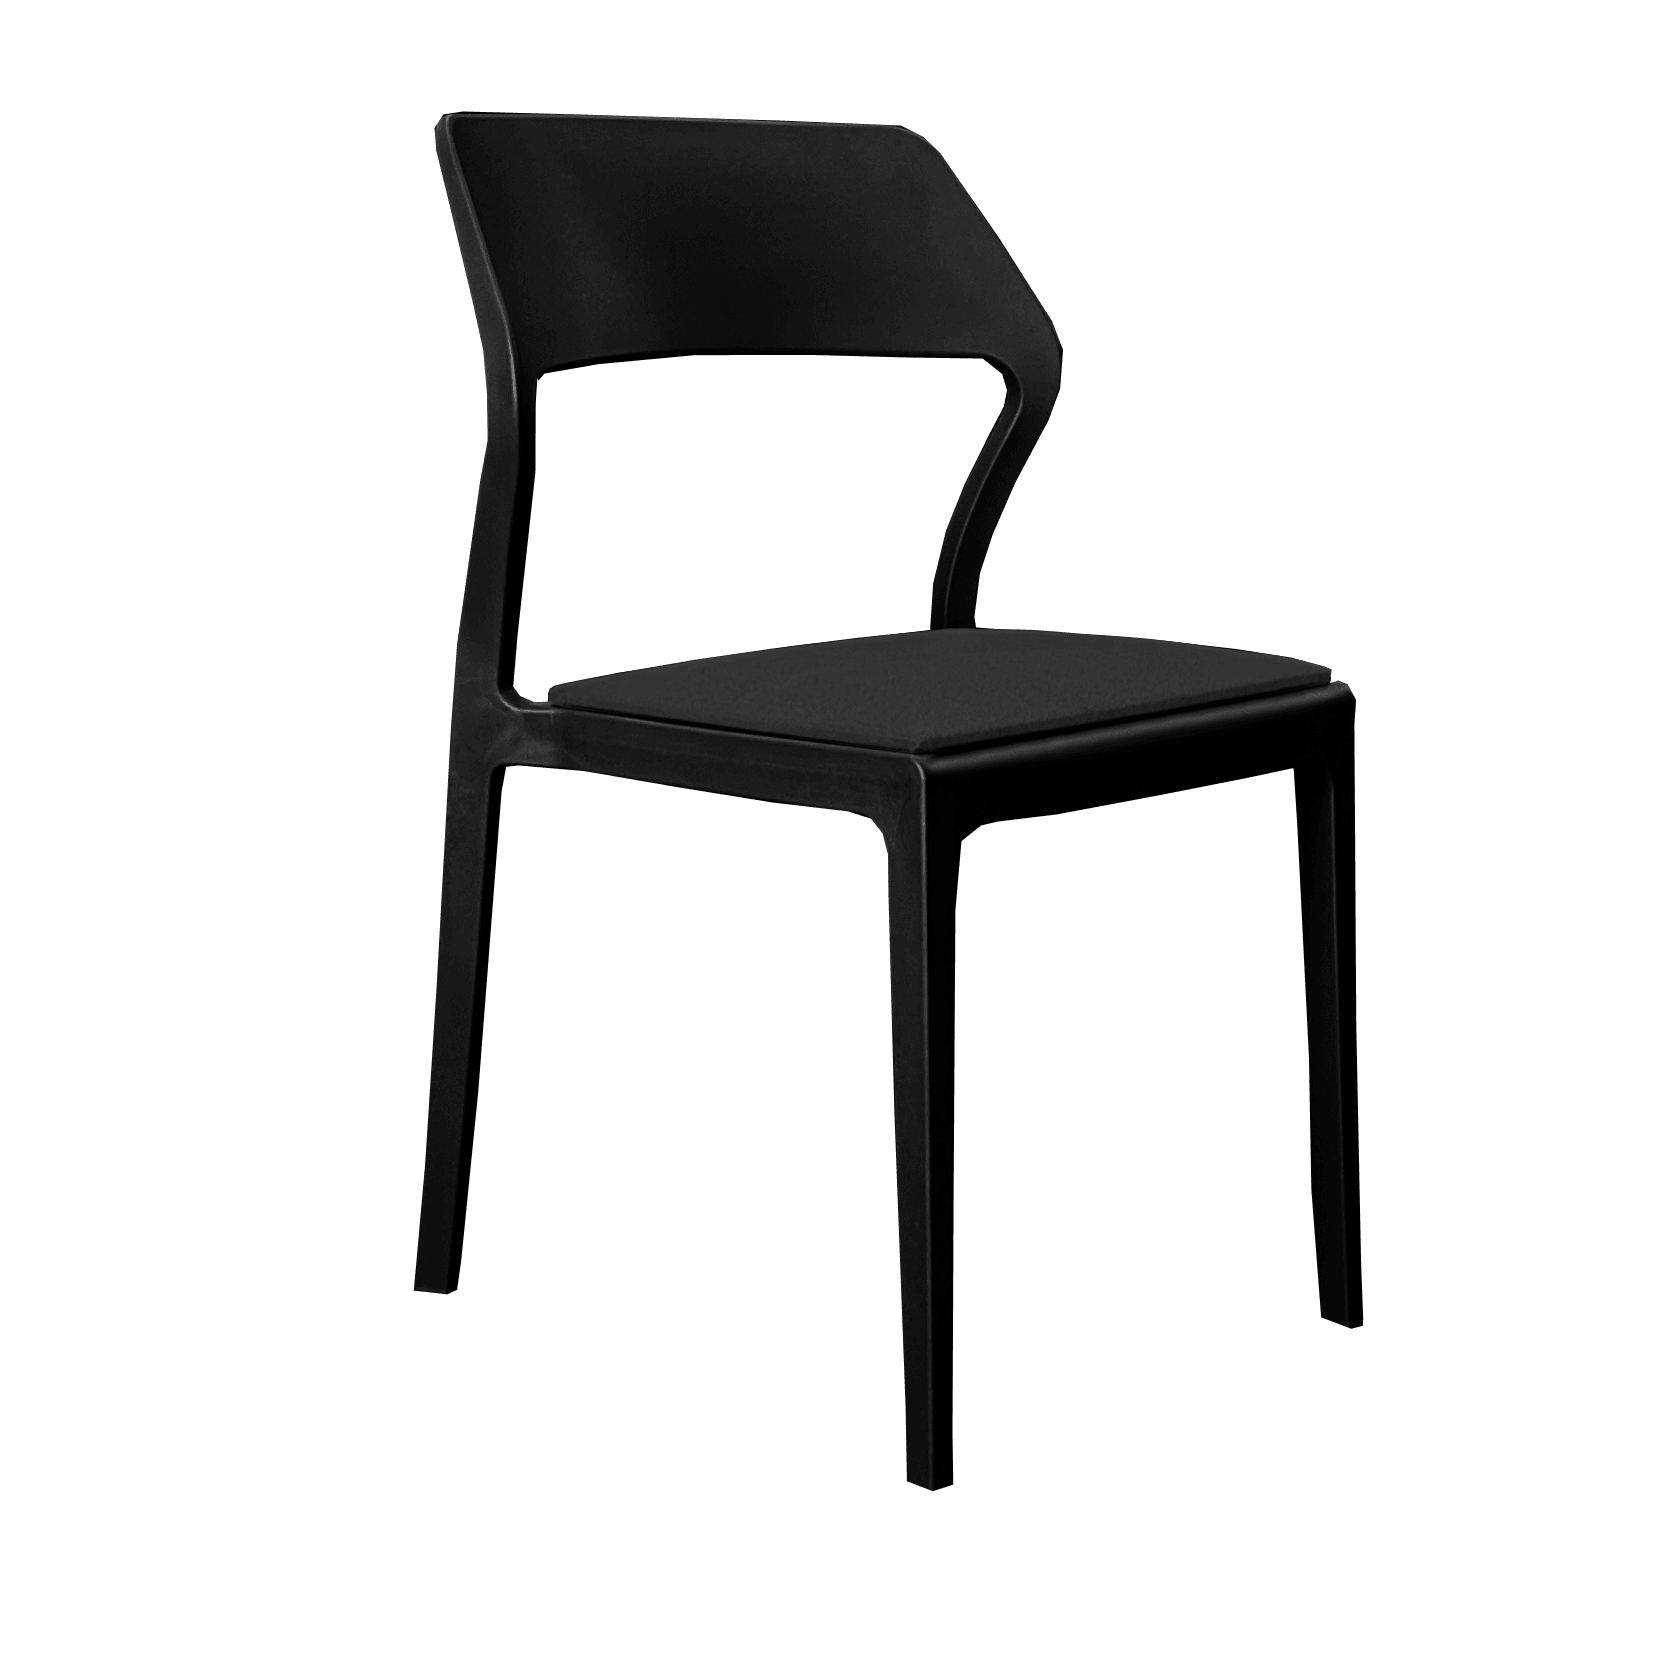 Seat Cushion - Black Fabric (Snow/Plus Chair)